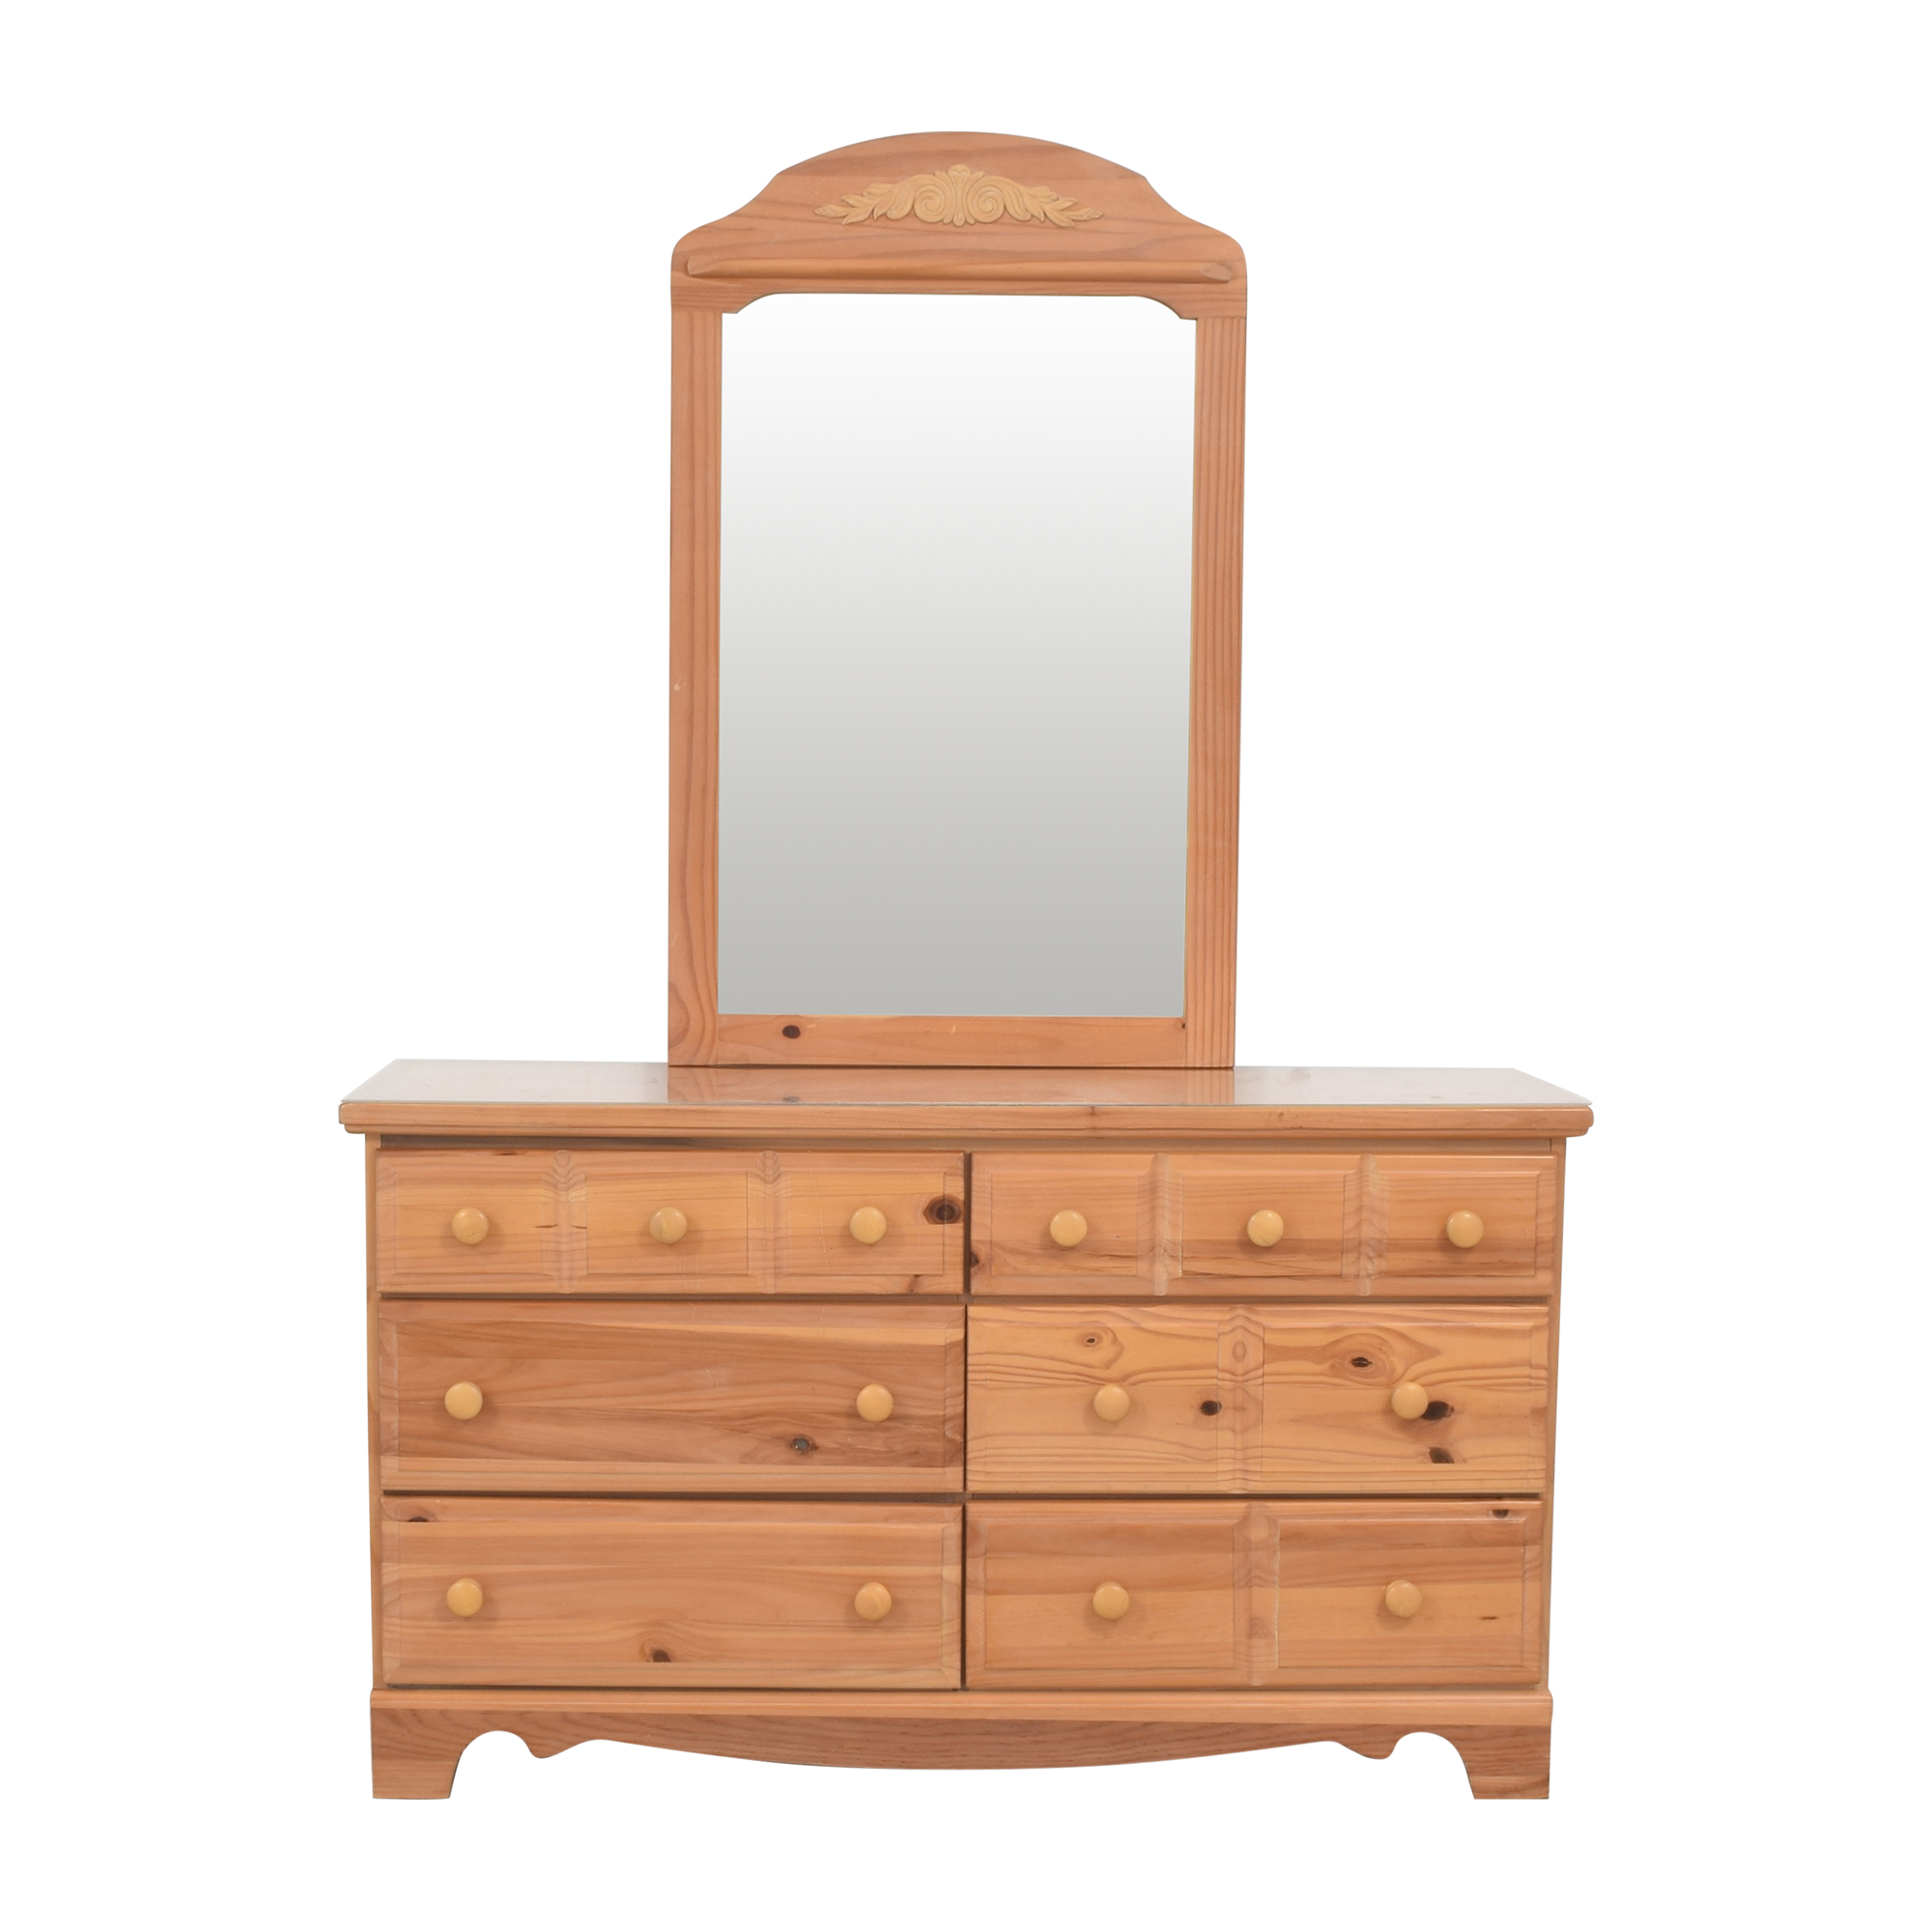 Vaughan-Bassett Vaughan-Bassett Six Drawer Dresser and Mirror price